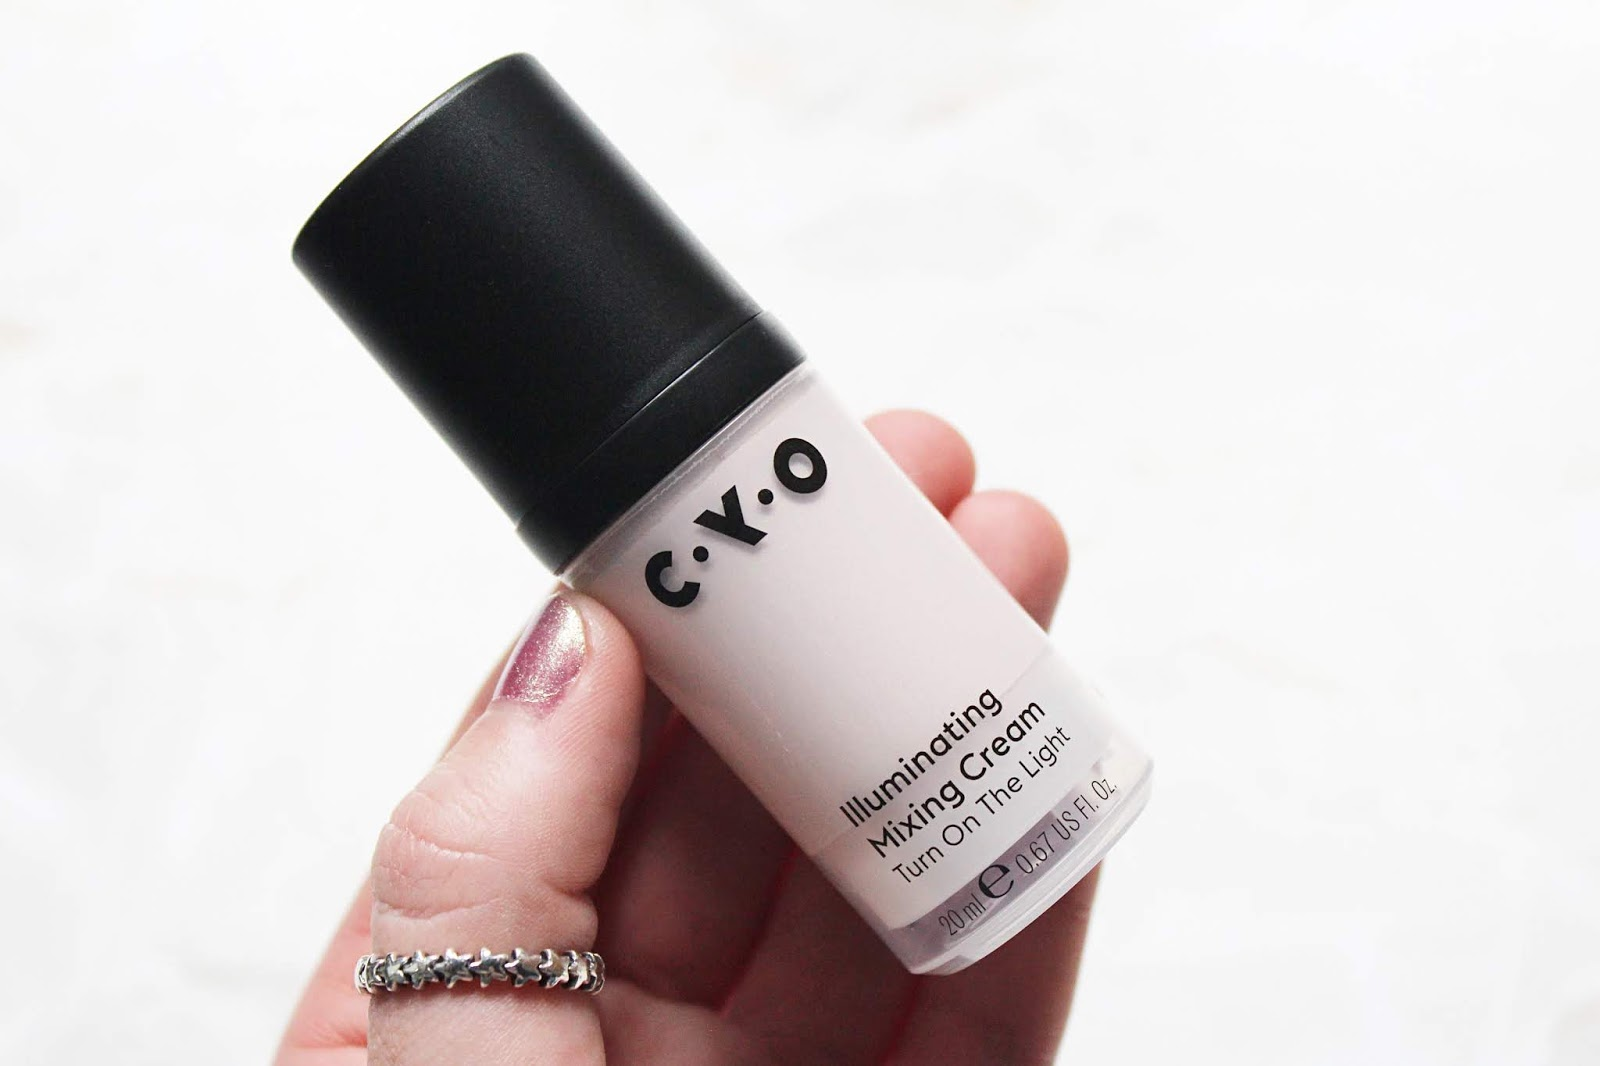 CYO Illuminating Mixing Cream Review